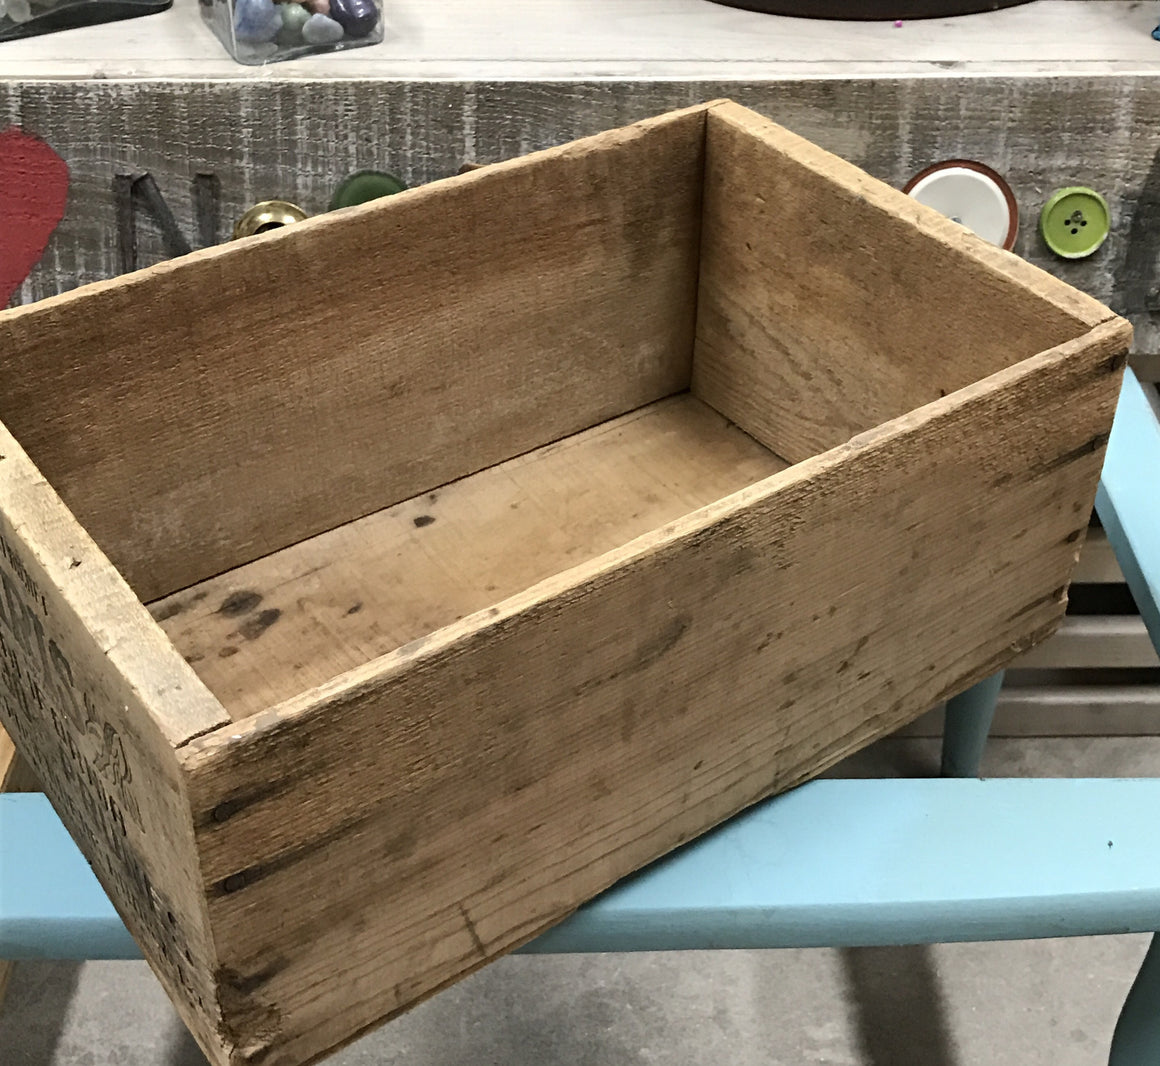 Iris California Prune Wooden Crate - VINTAGE JOURNEY MARKET - Upcycling & Restoration